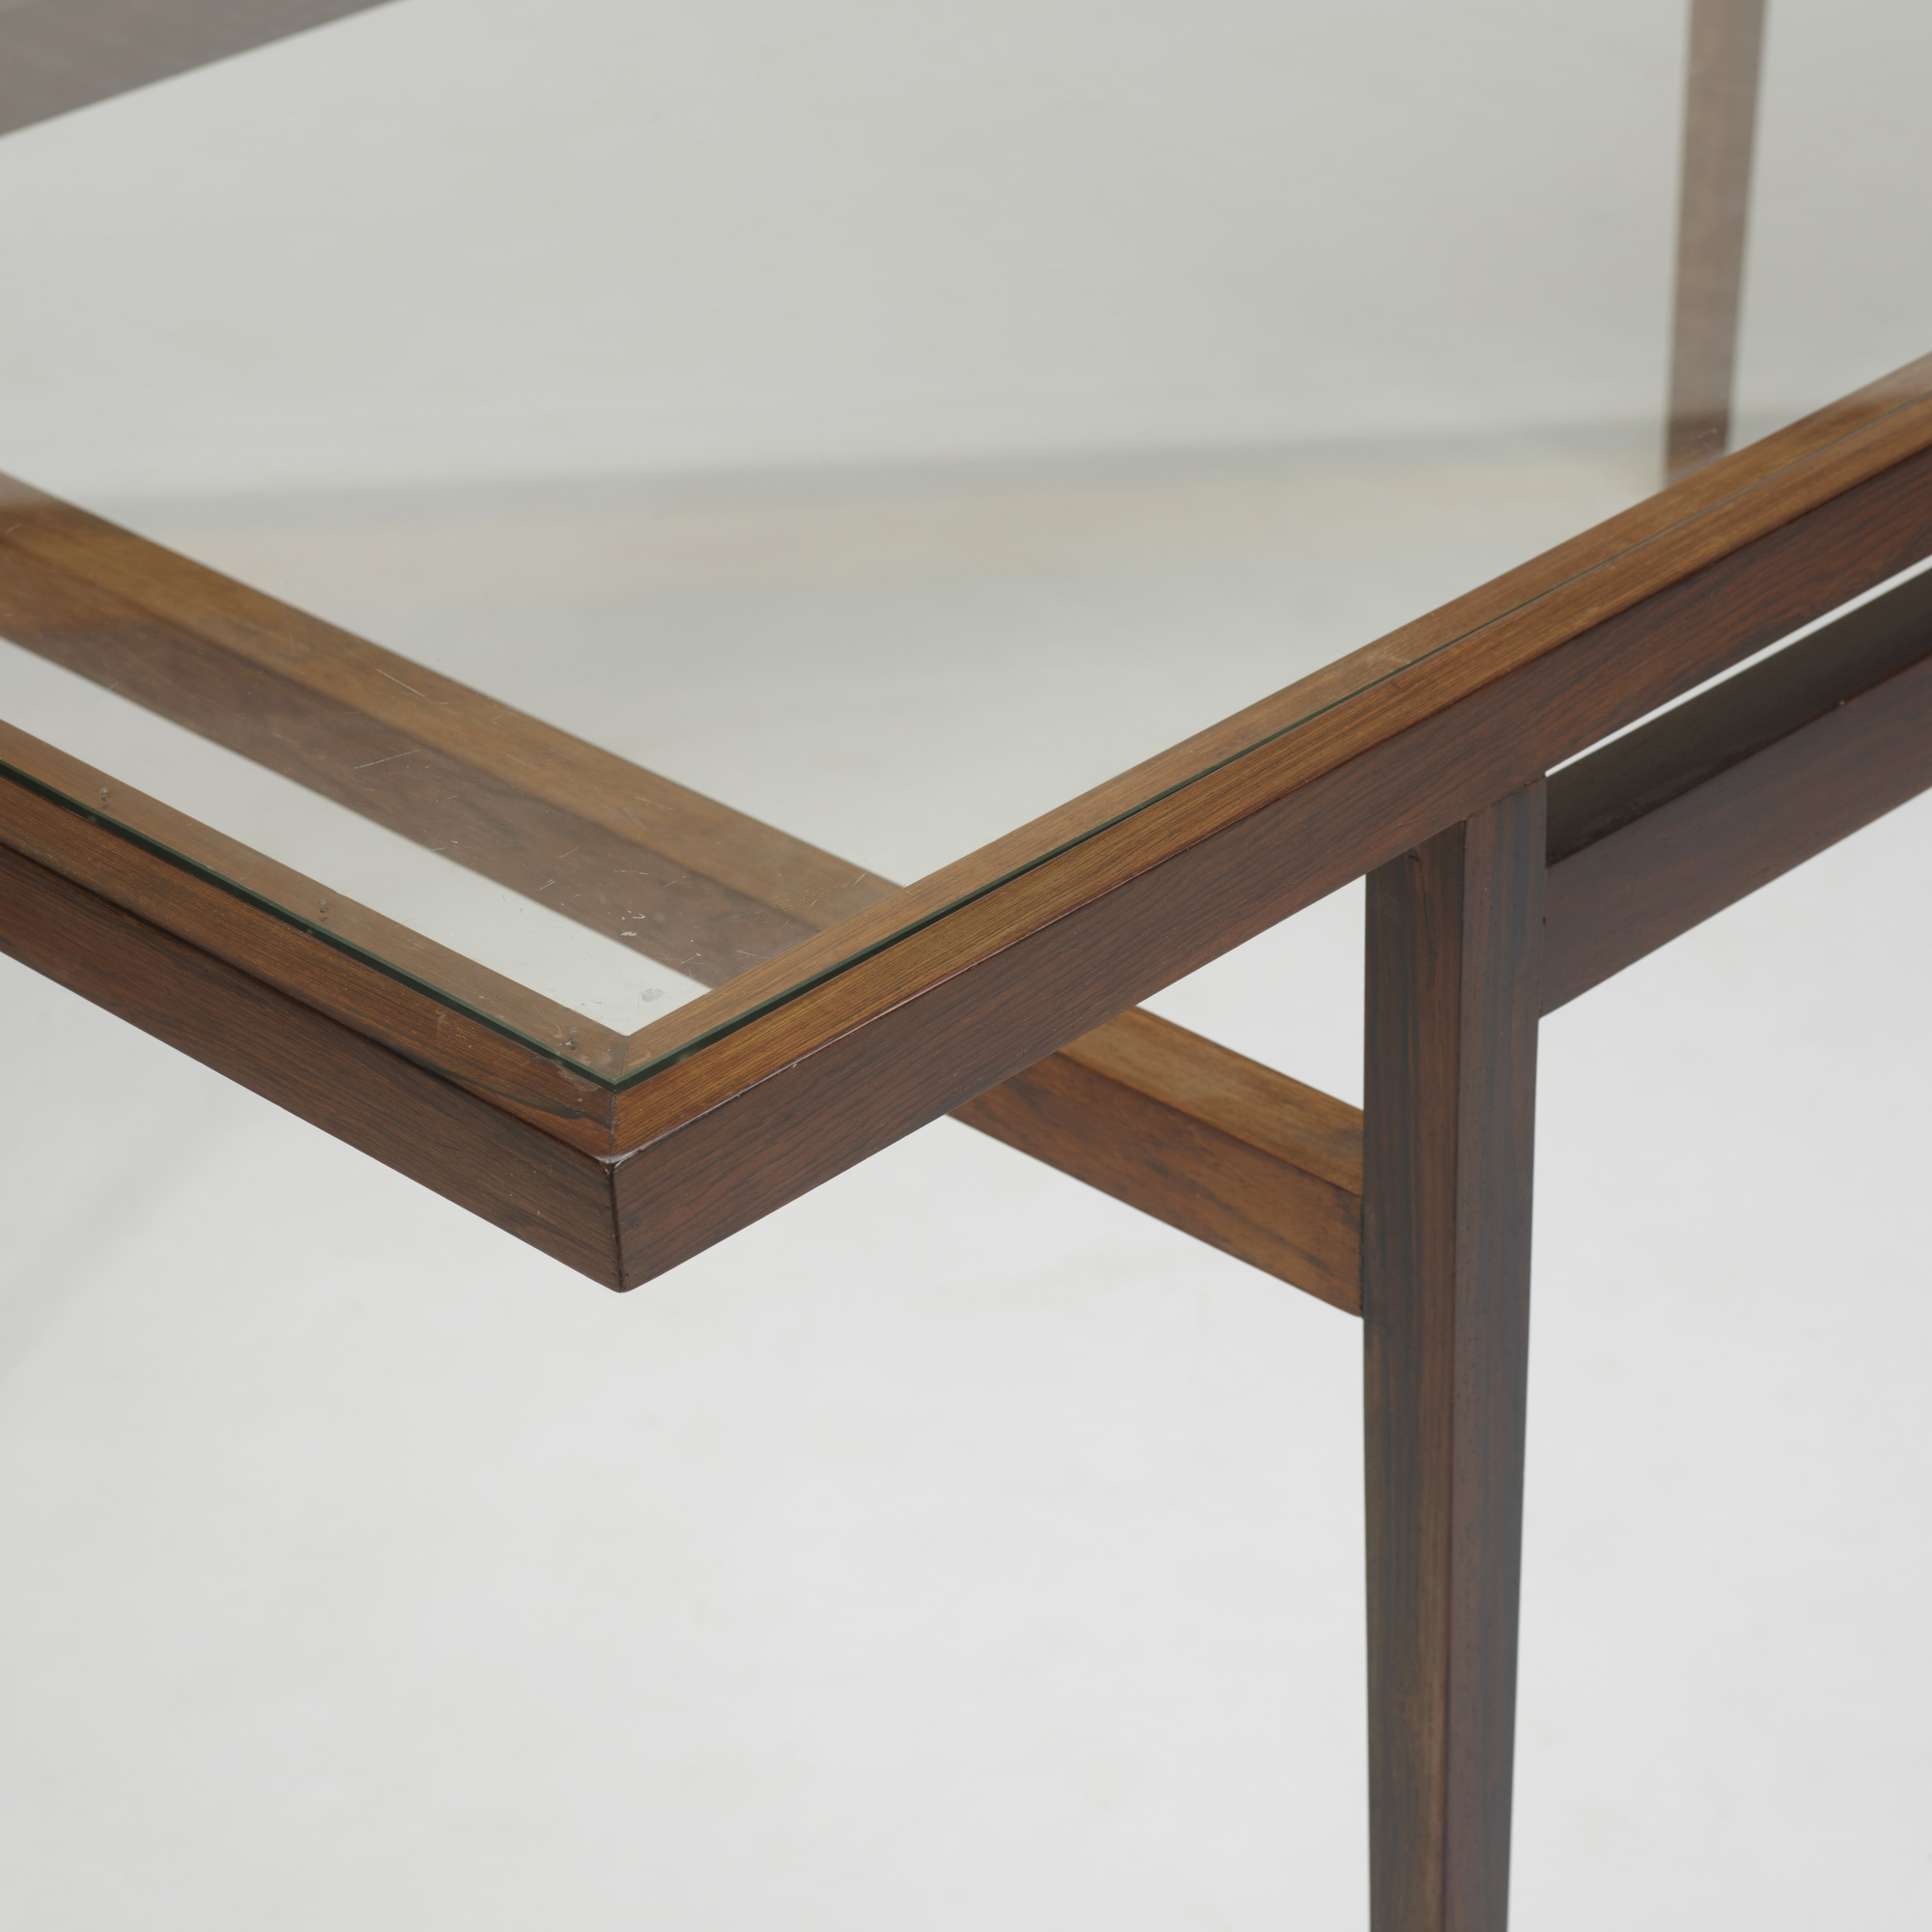 174: Branco & Preto / dining table (3 of 3)